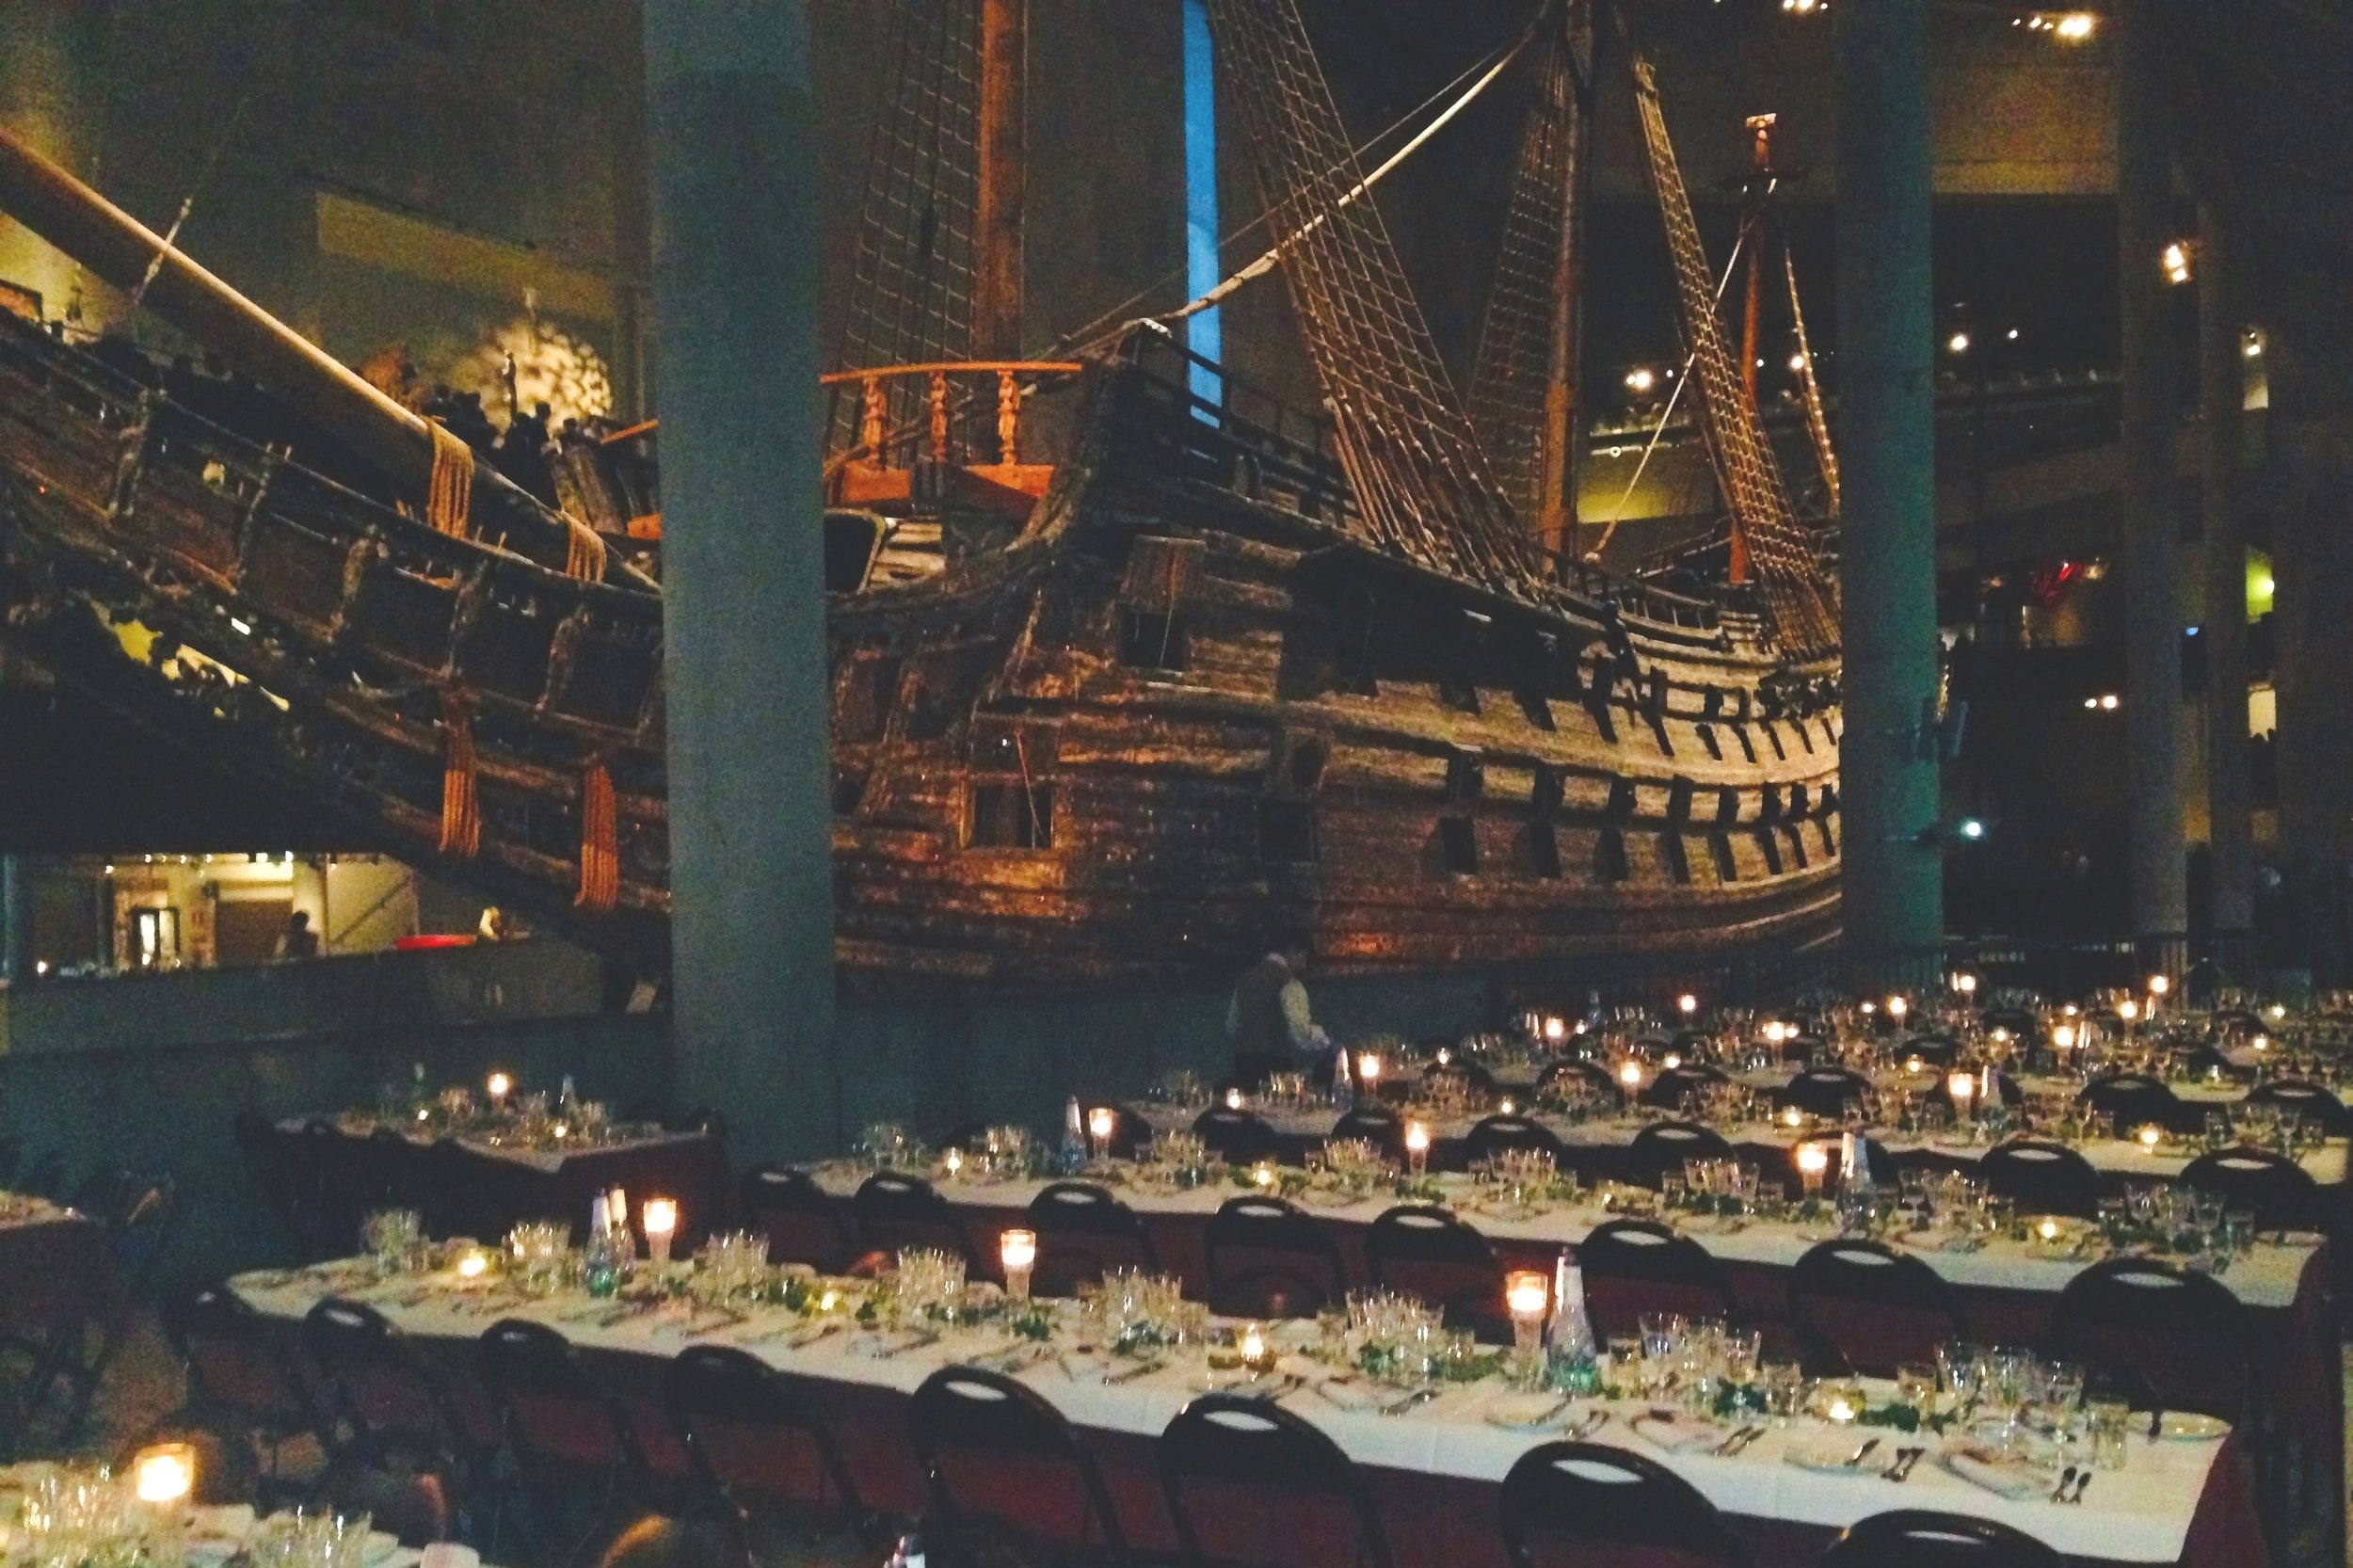 ISSFAL 2014 CONGRESS GALA DINNER   Vasa MUSEUM, STOCKHOLM